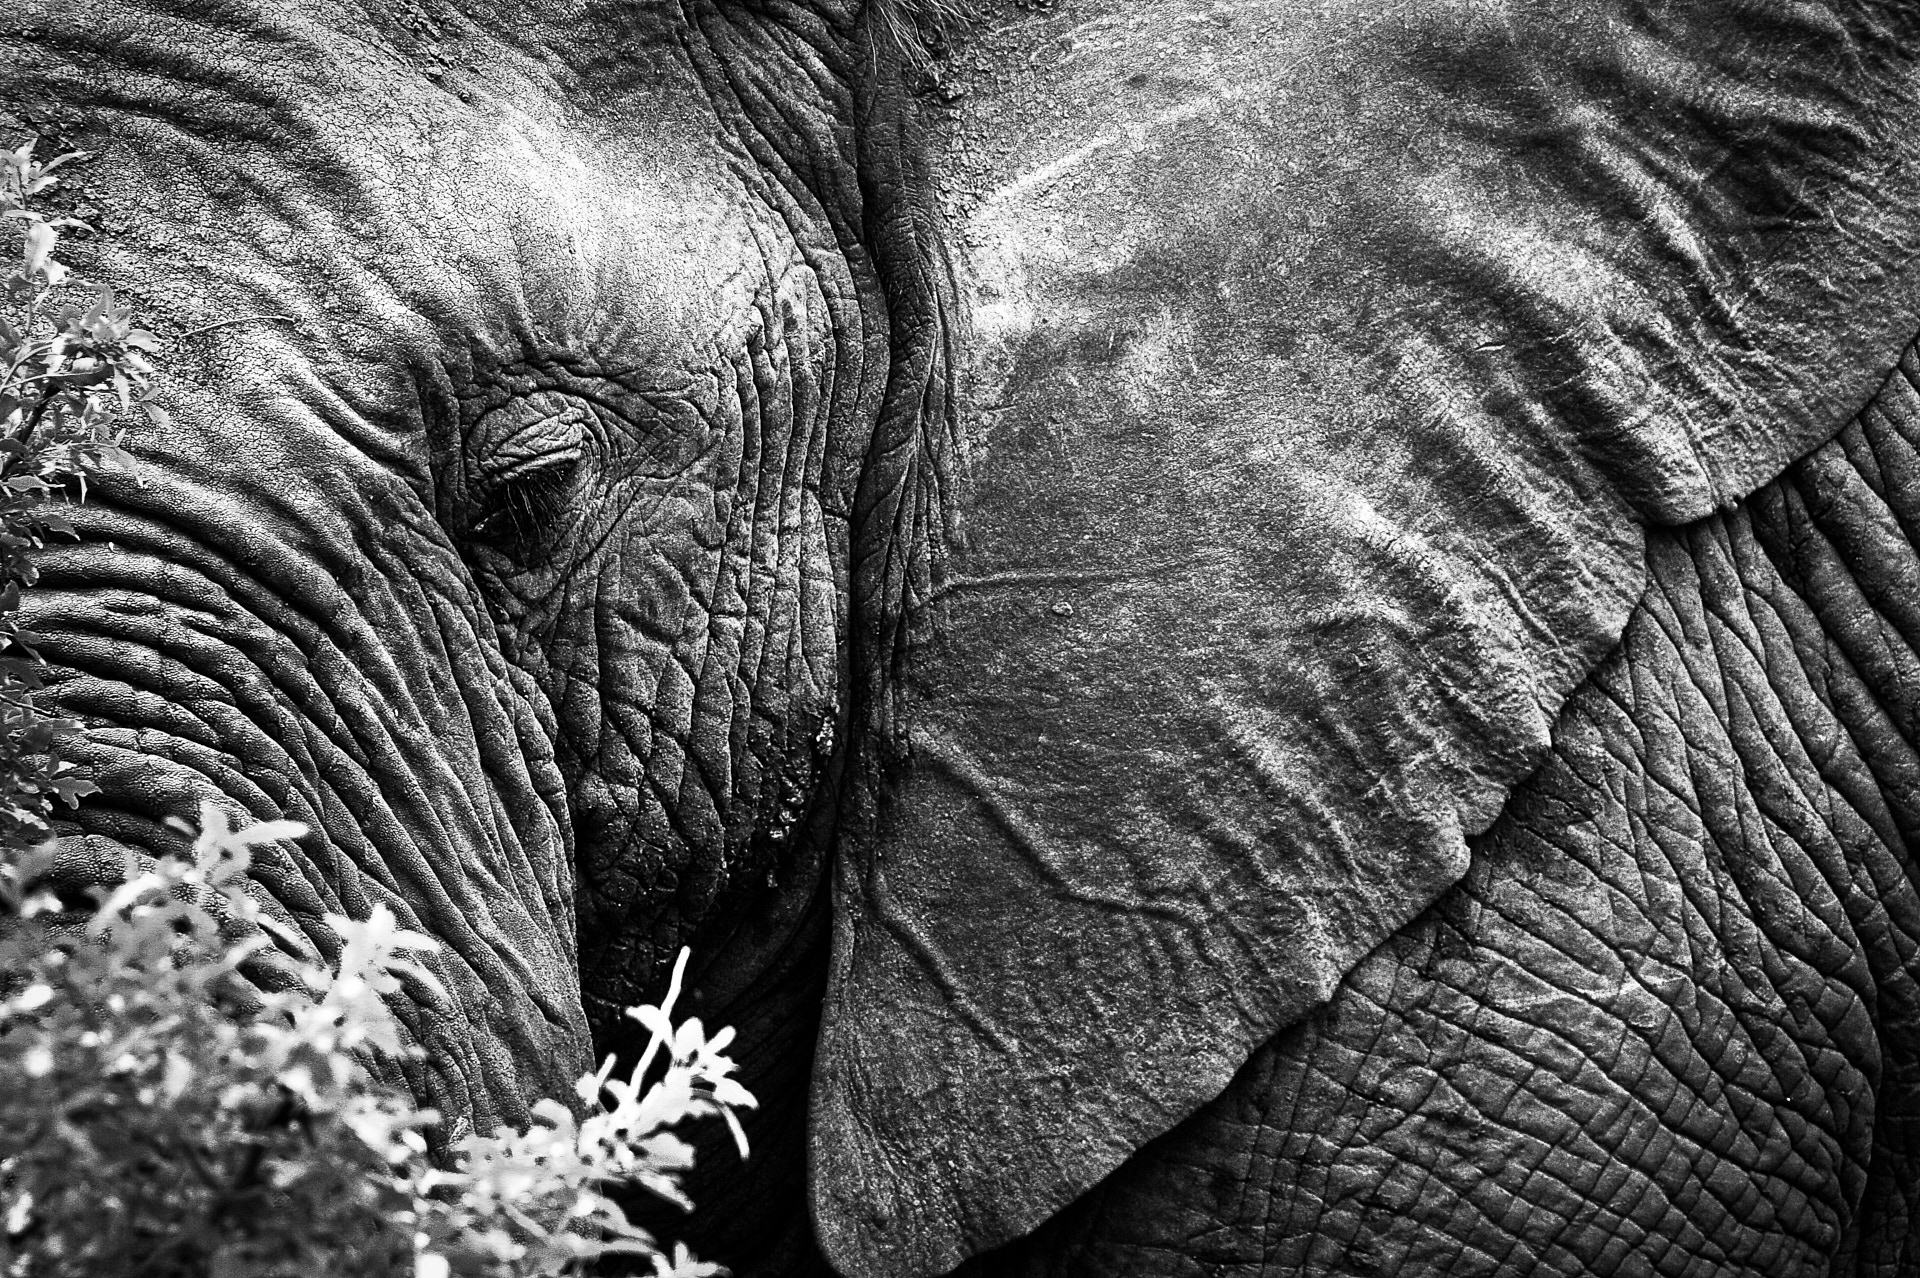 SOUTH AFRICA: MONOCHROM